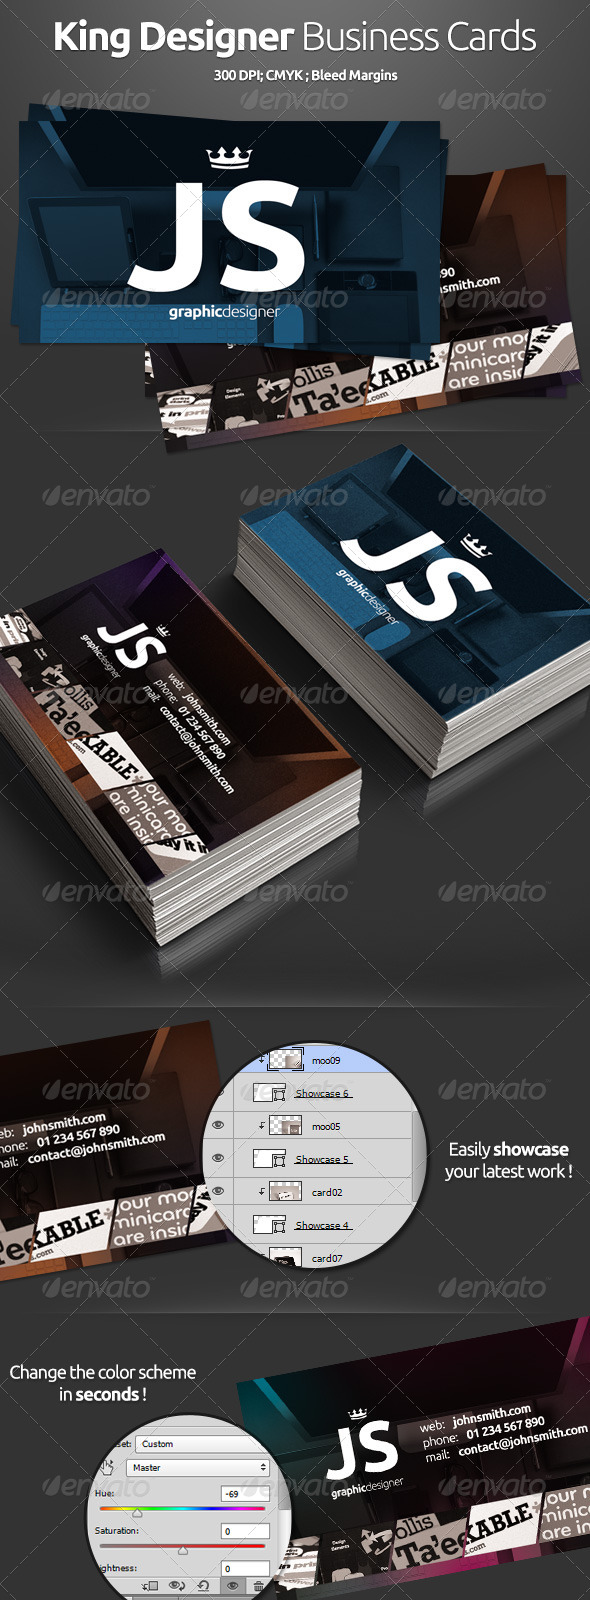 King Designer Business Cards - Creative Business Cards